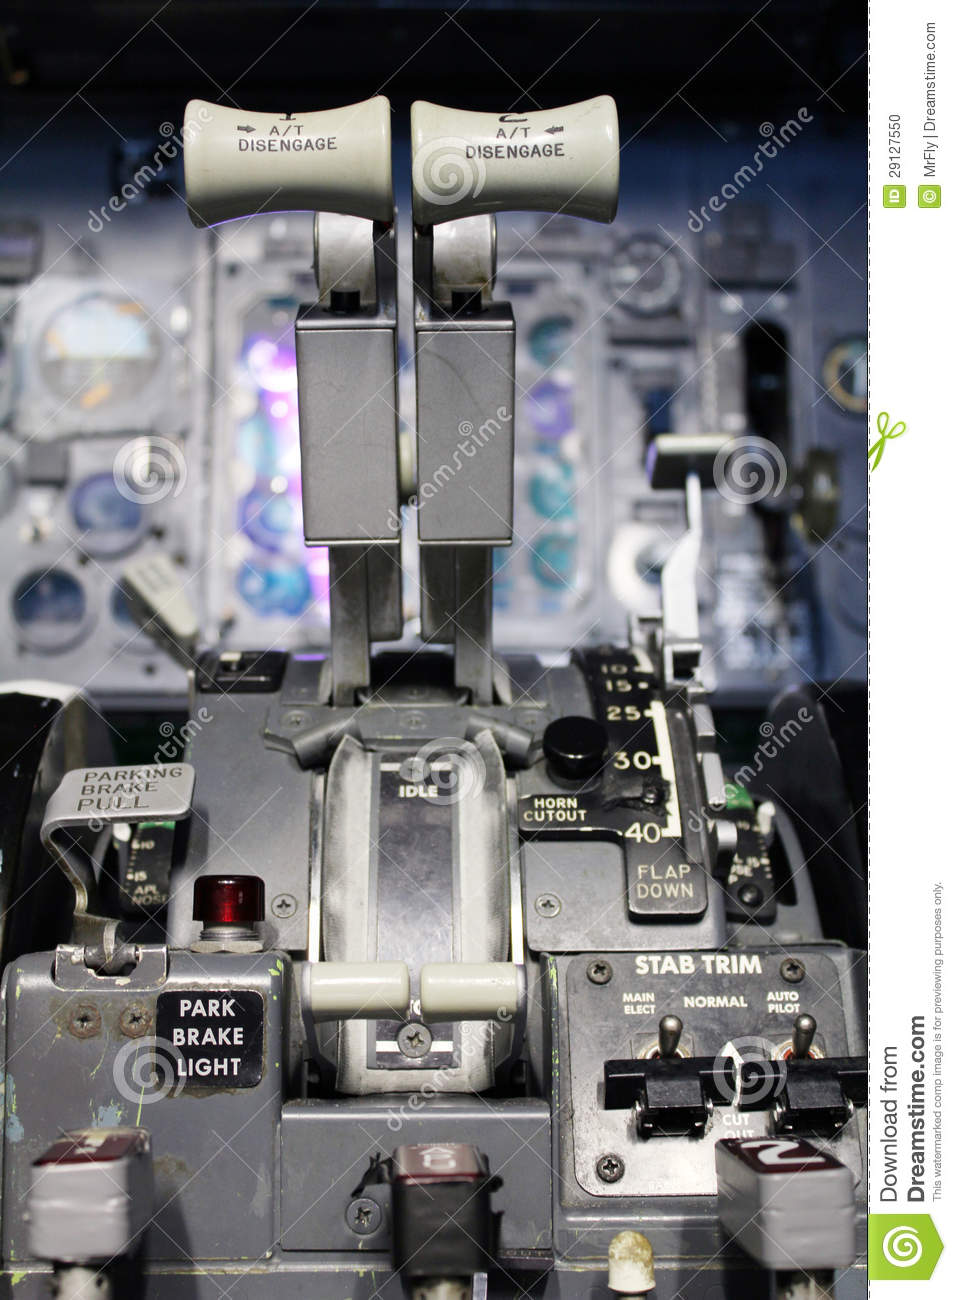 Boeing Thrust Levers Stock Photo Image Of Pjedestal